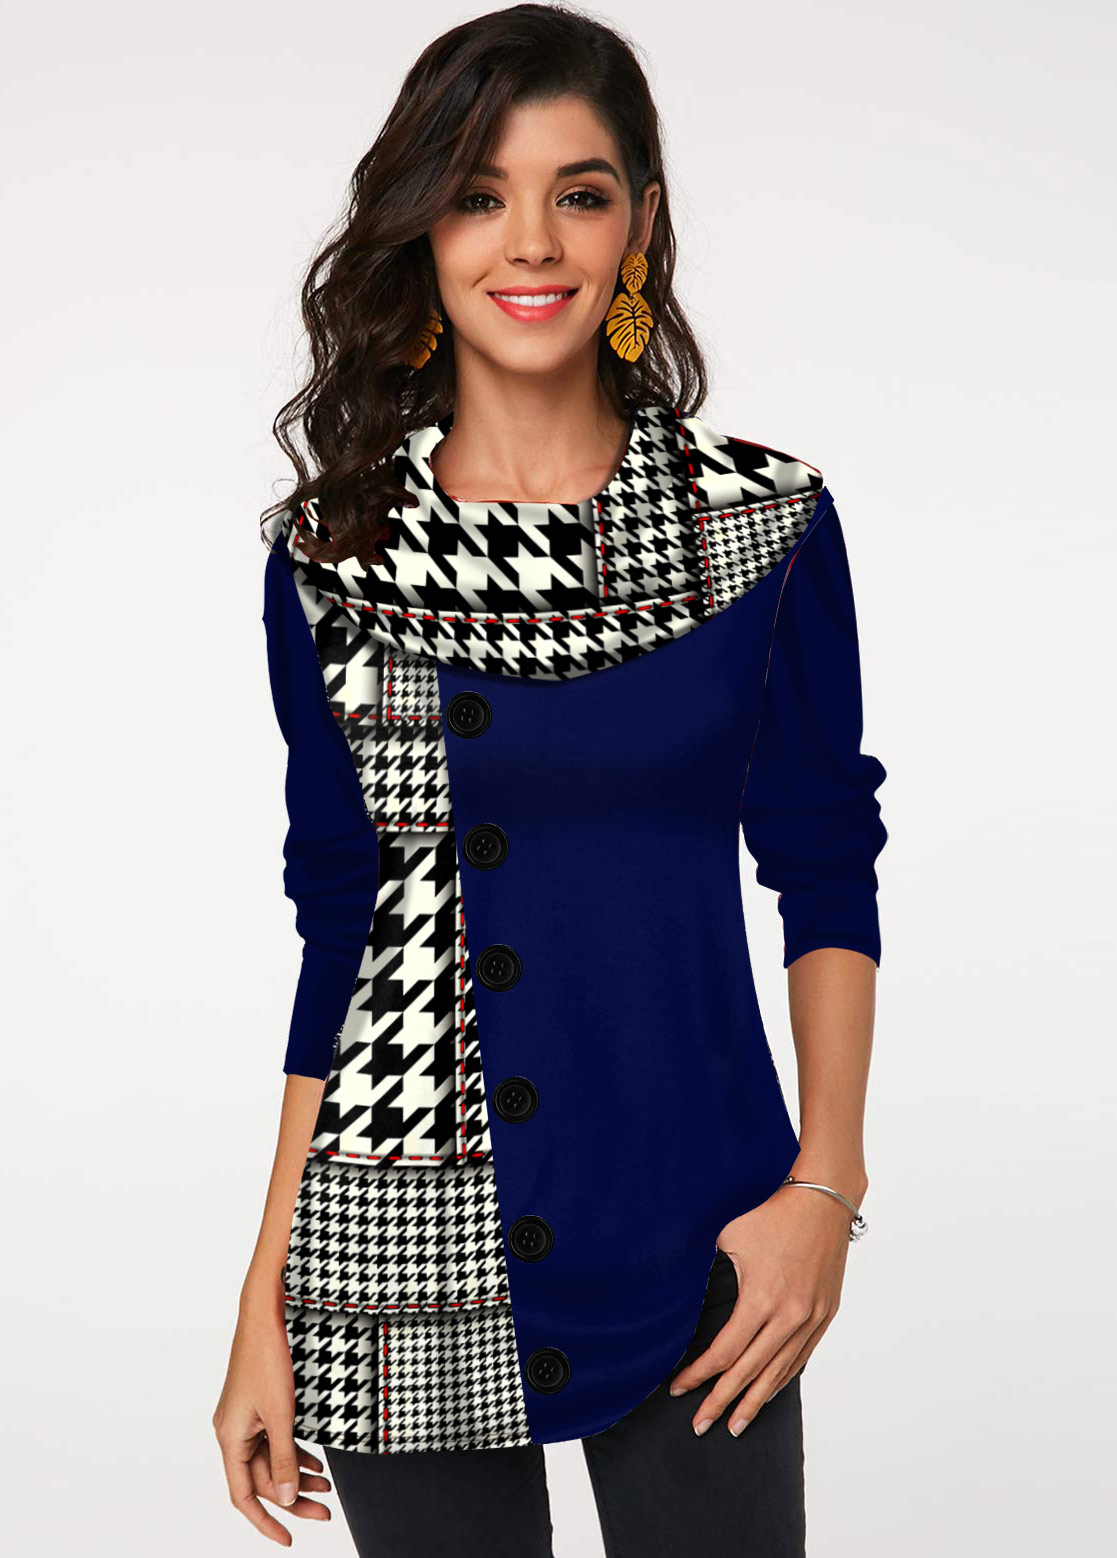 Long Sleeve Houndstooth Print Decorative Button Tunic Top